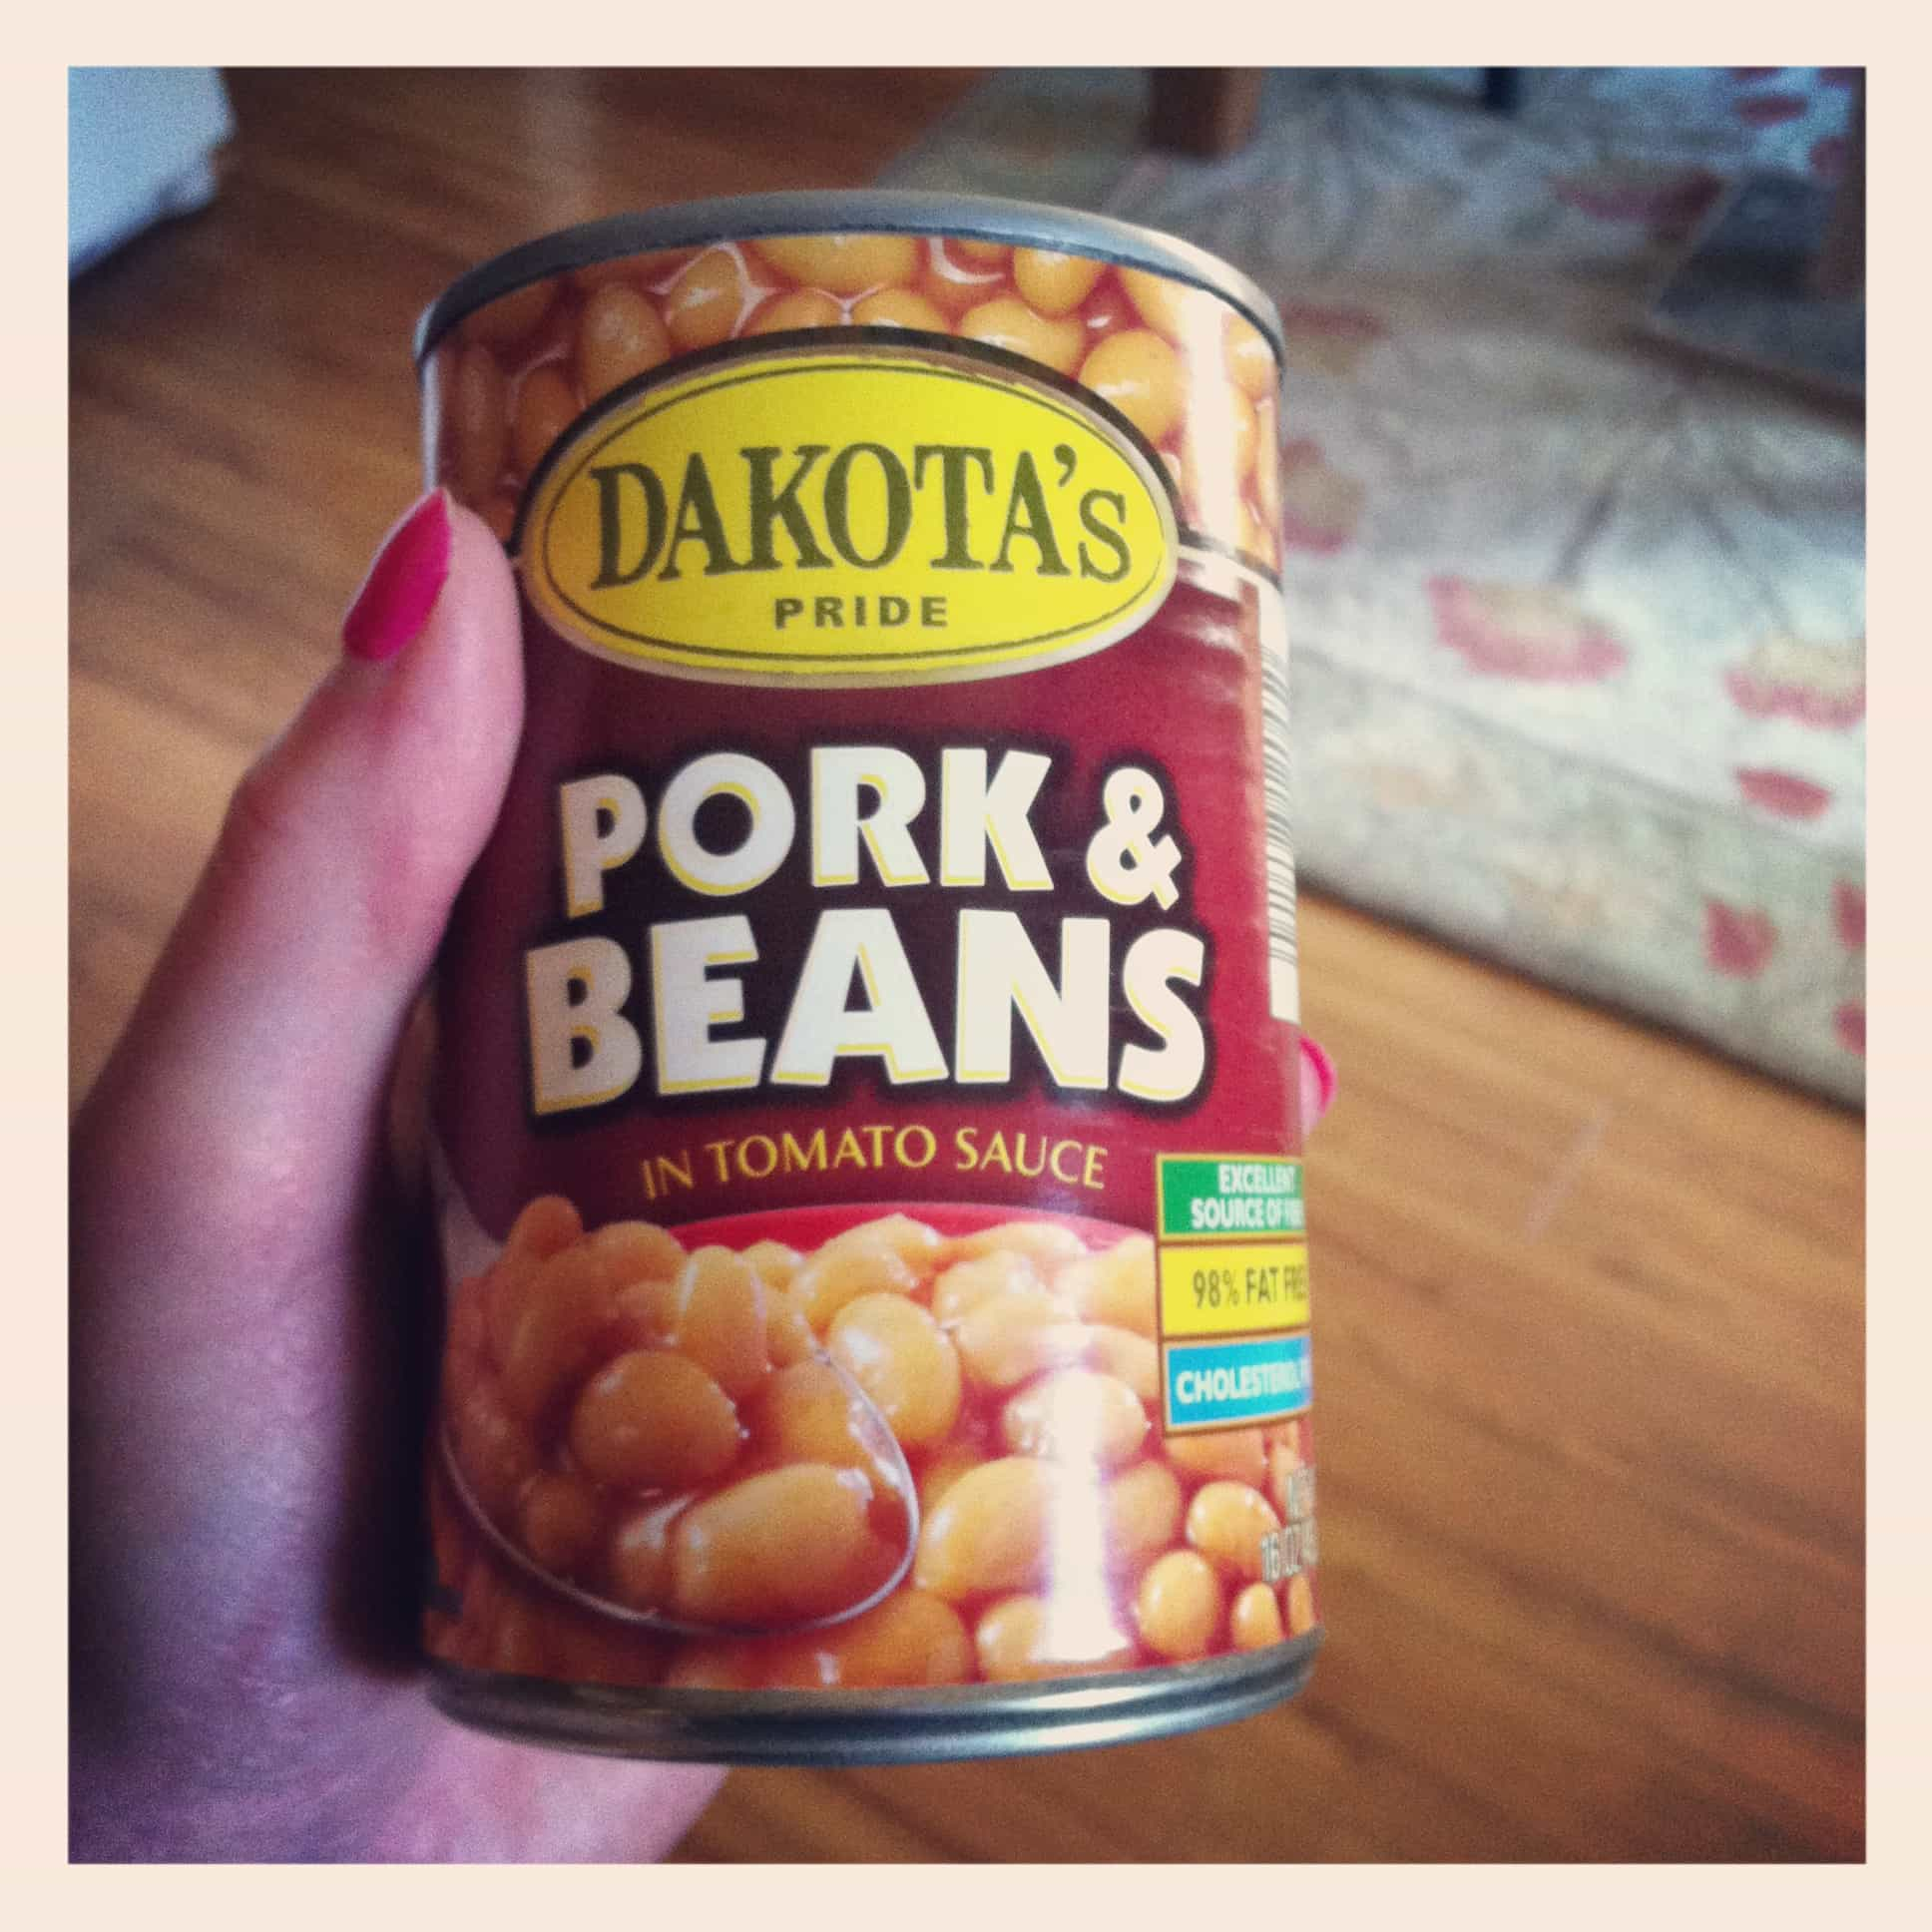 These spicy baked beans are inspired by the pioneer woman the idea to